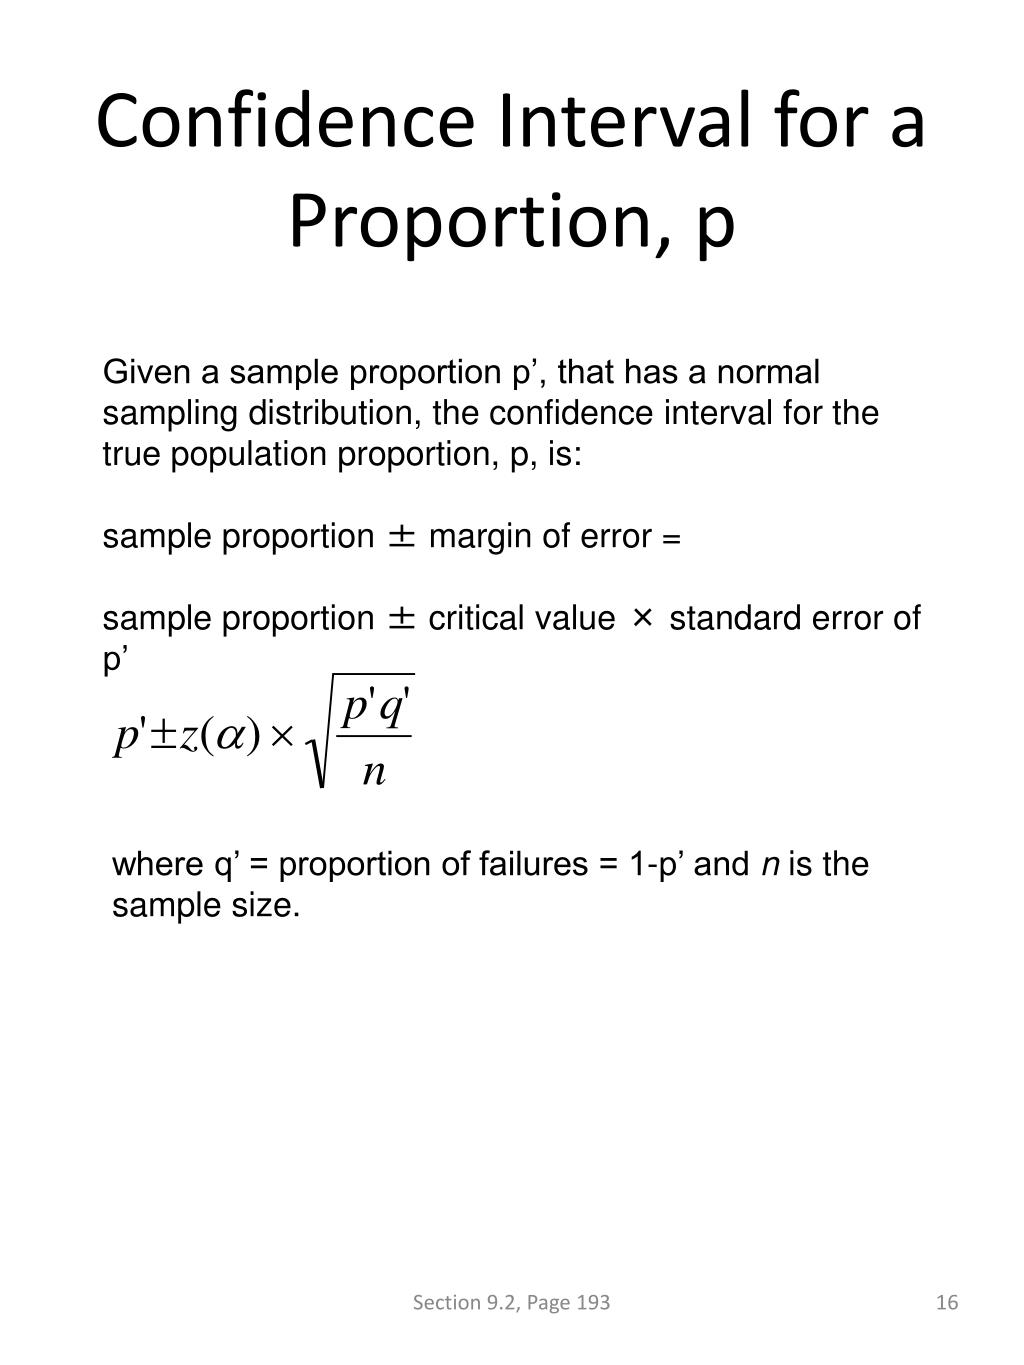 Confidence Interval for a Proportion, p